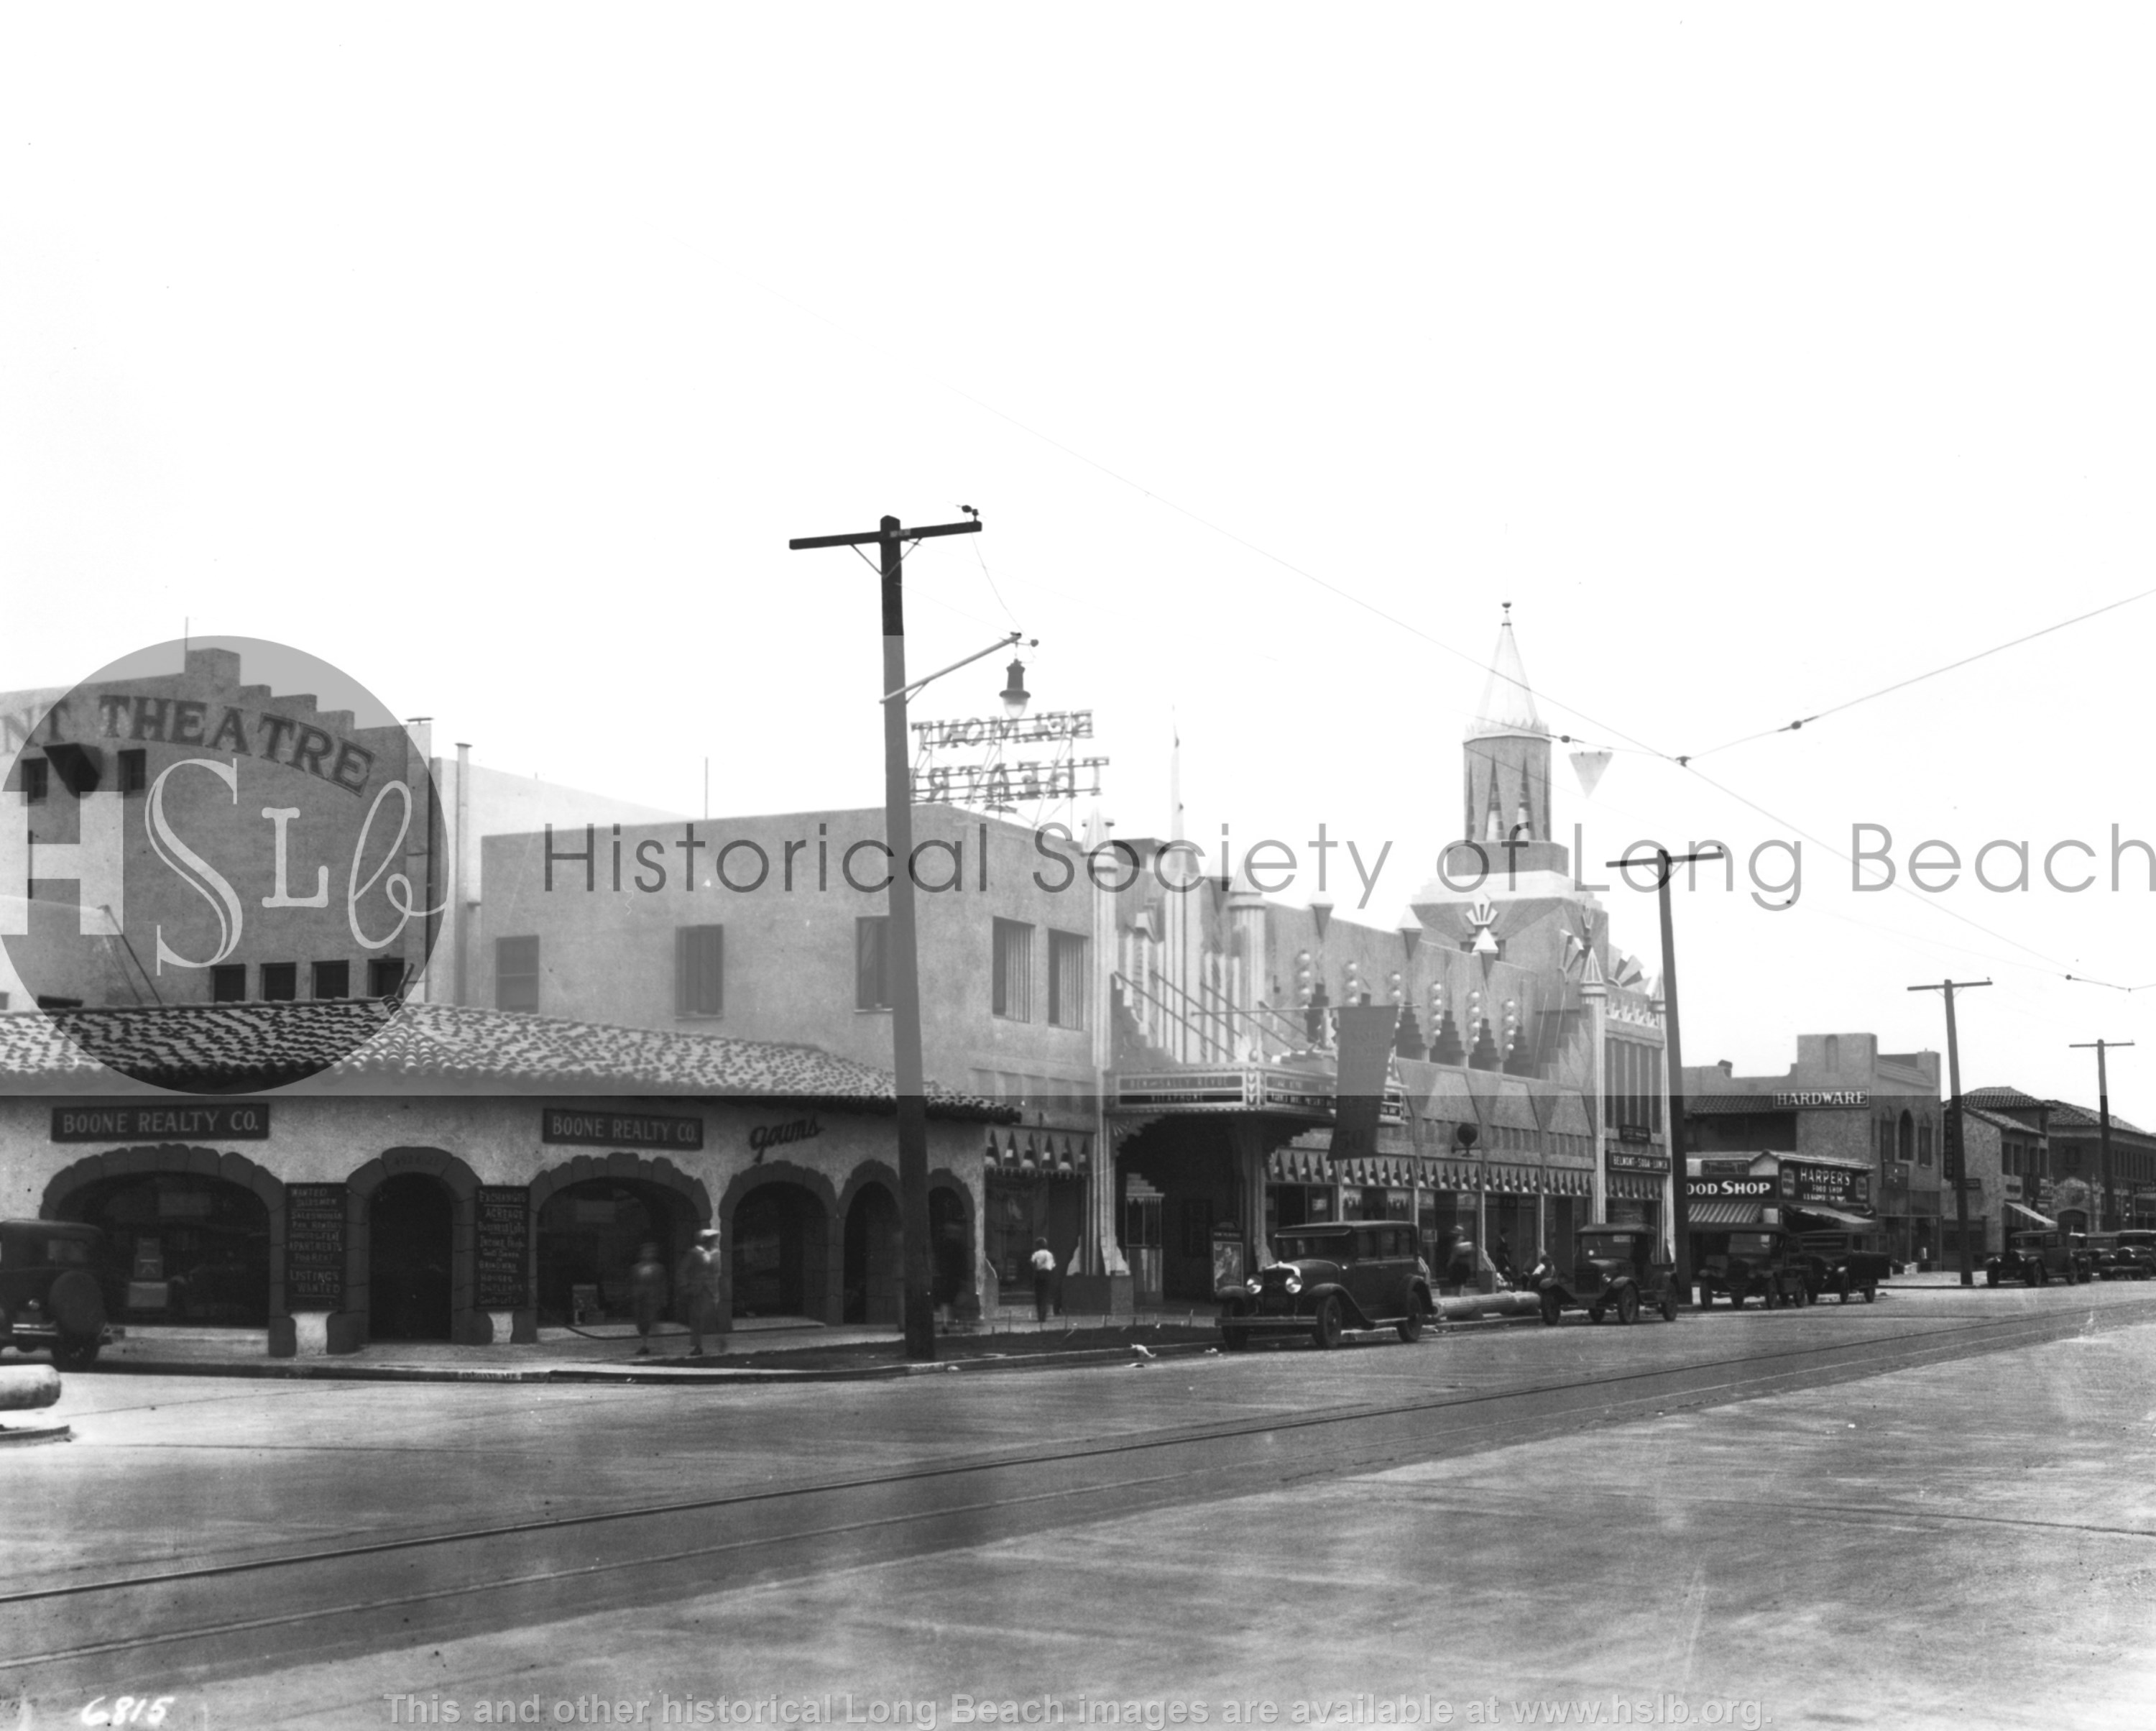 Belmont Shore Second St, 1930 vintage photograph